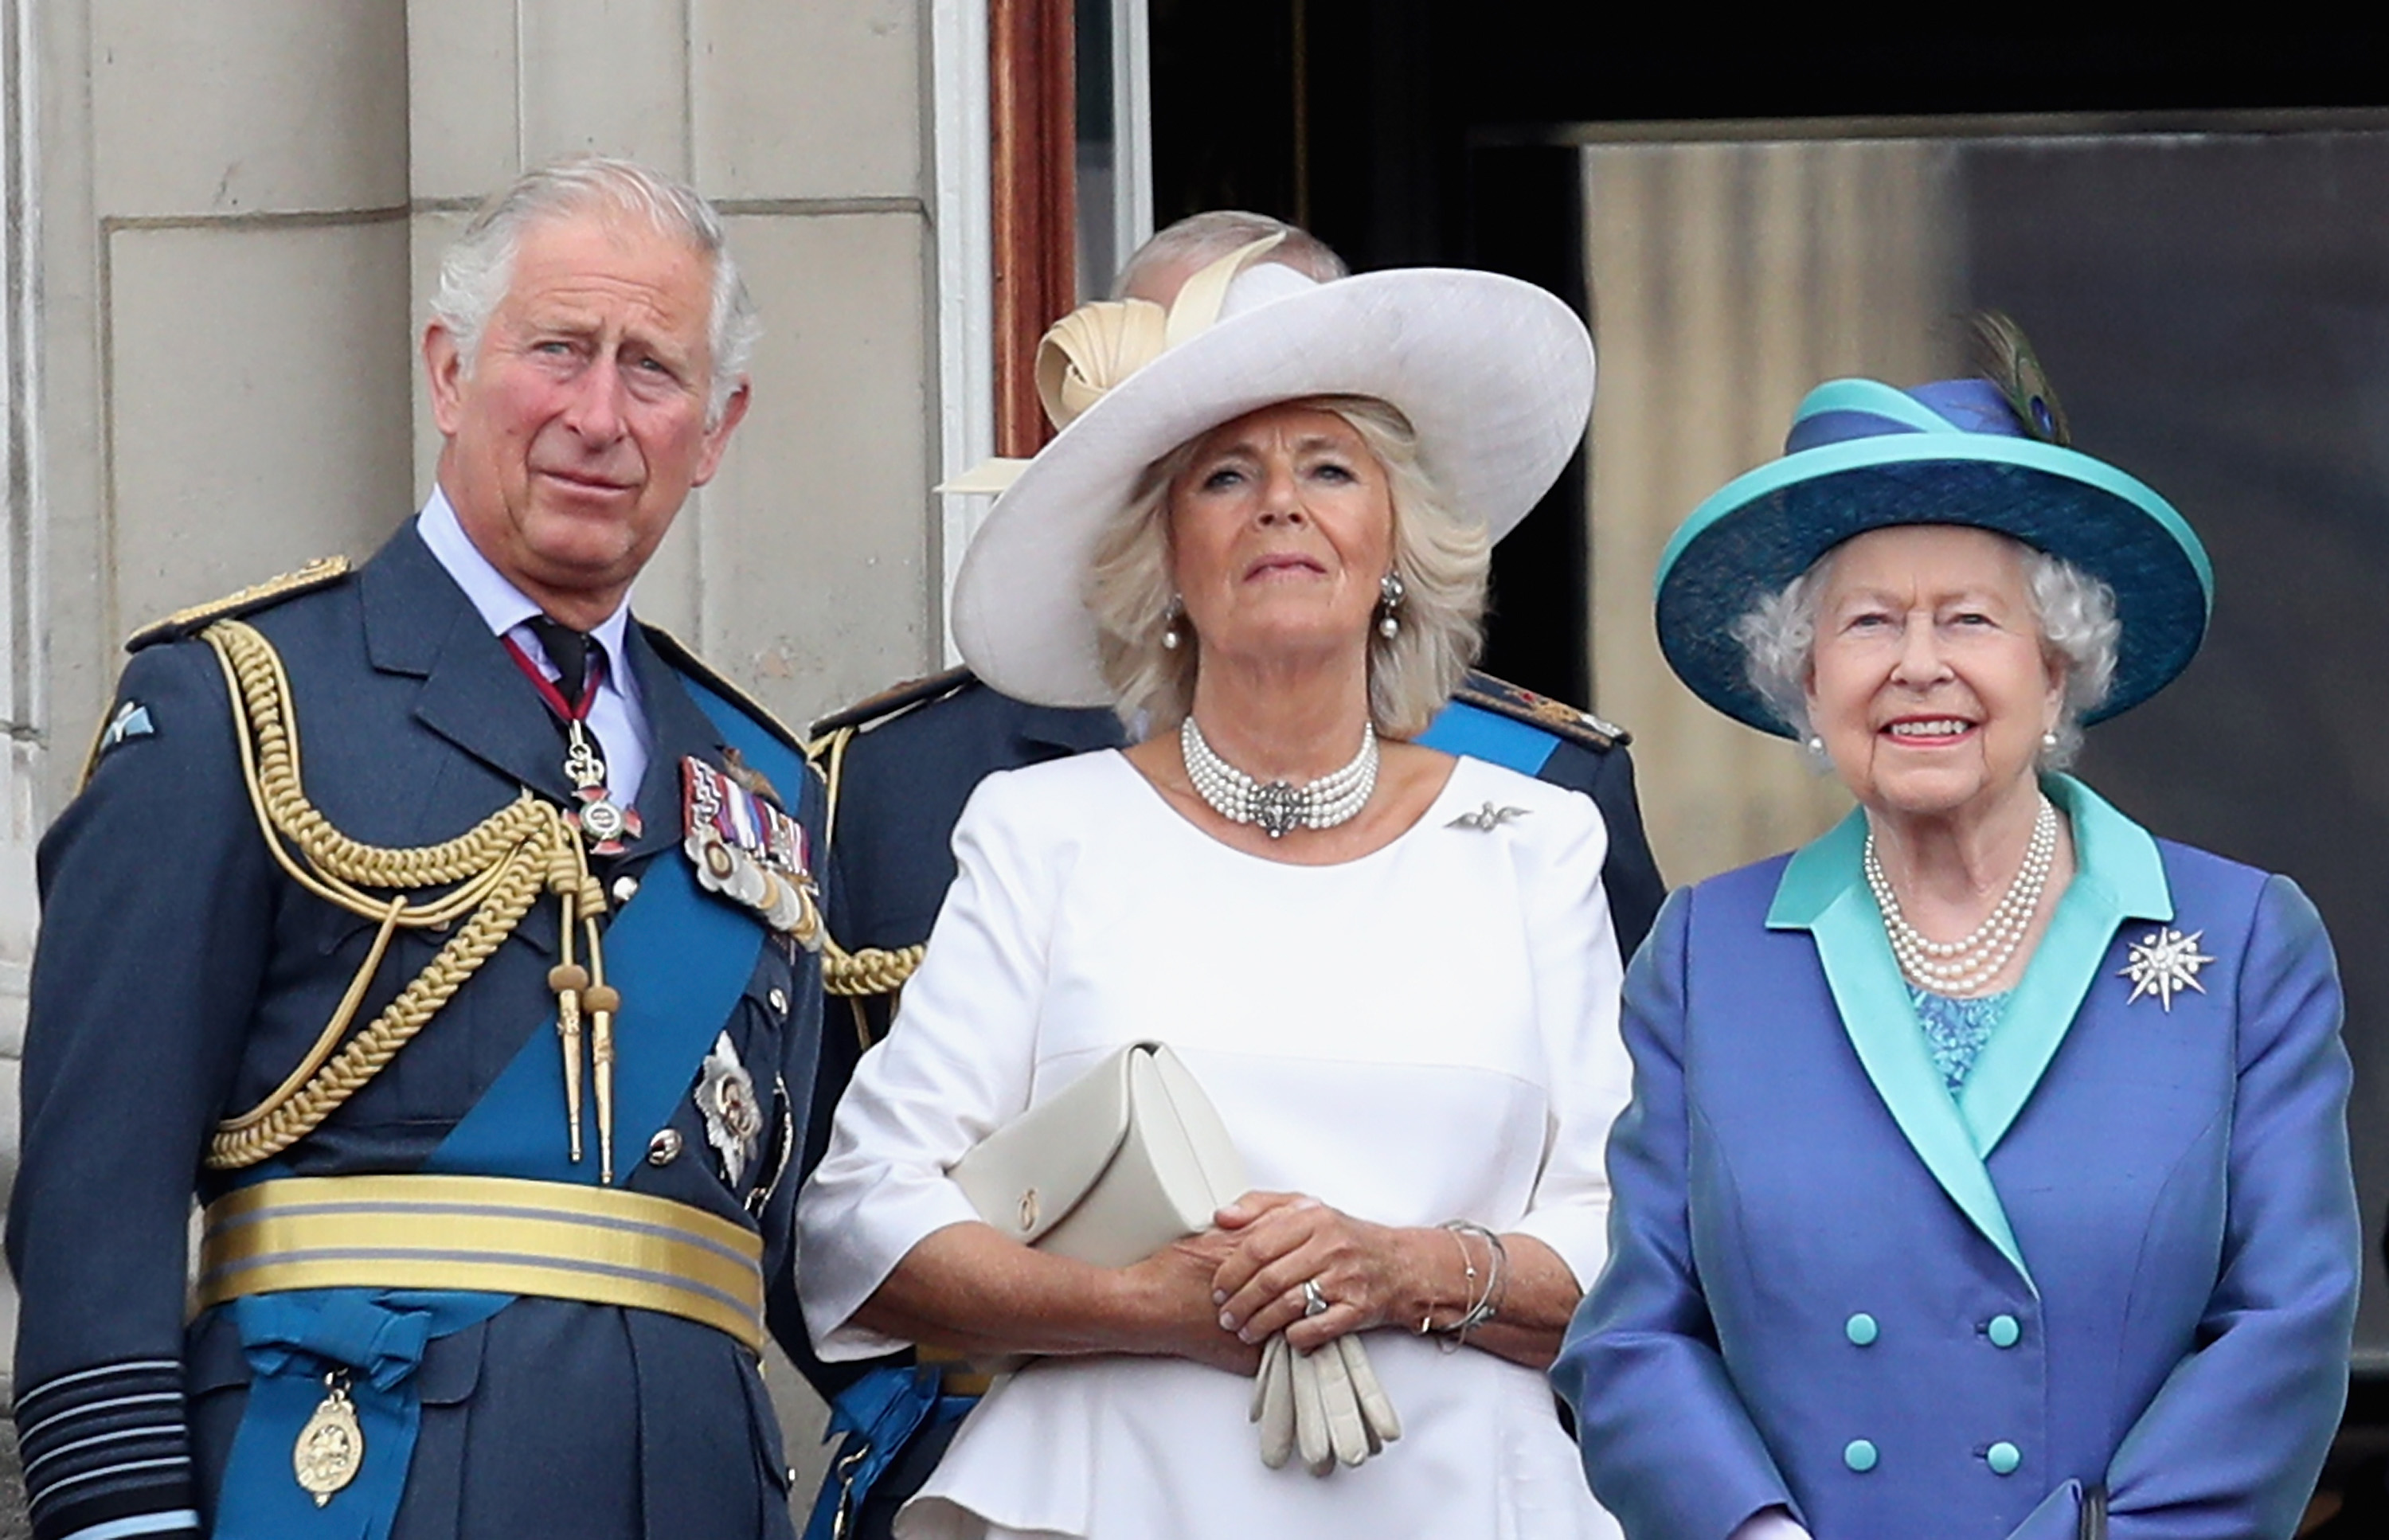 (L-R) Prince Charles, Prince of Wales, Camilla, Duchess of Cornwall, Queen Elizabeth II watch the RAF flypast on the balcony of Buckingham Palace, as members of the Royal Family attend events to mark the centenary of the RAF on July 10, 2018 in London, England.